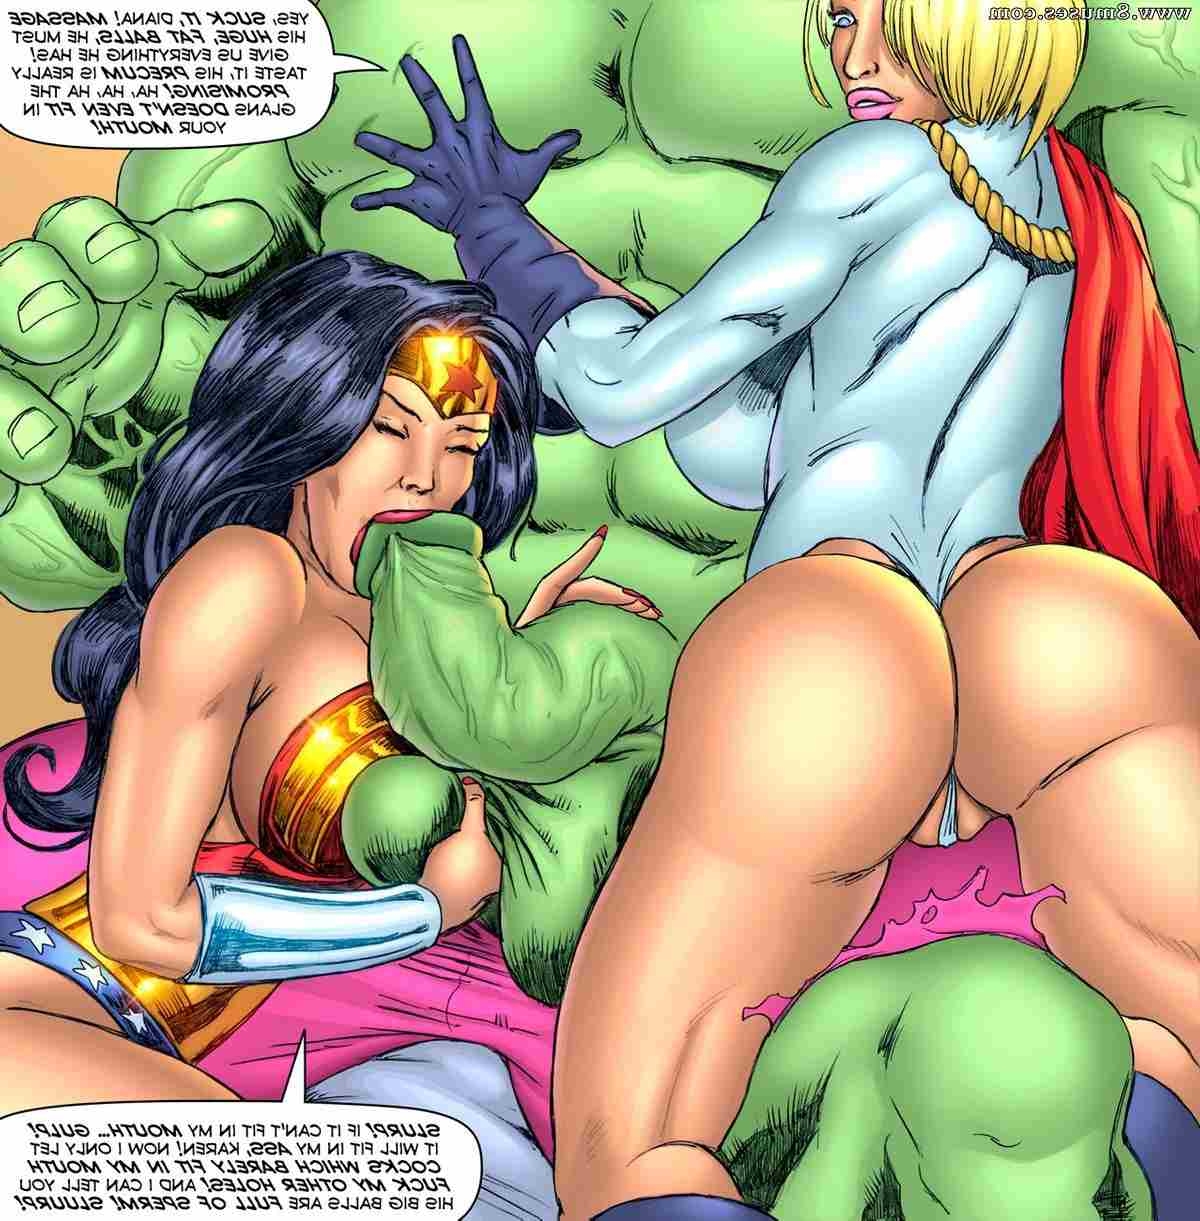 SuperHeroineComixxx/The-Big-One The_Big_One__8muses_-_Sex_and_Porn_Comics_7.jpg